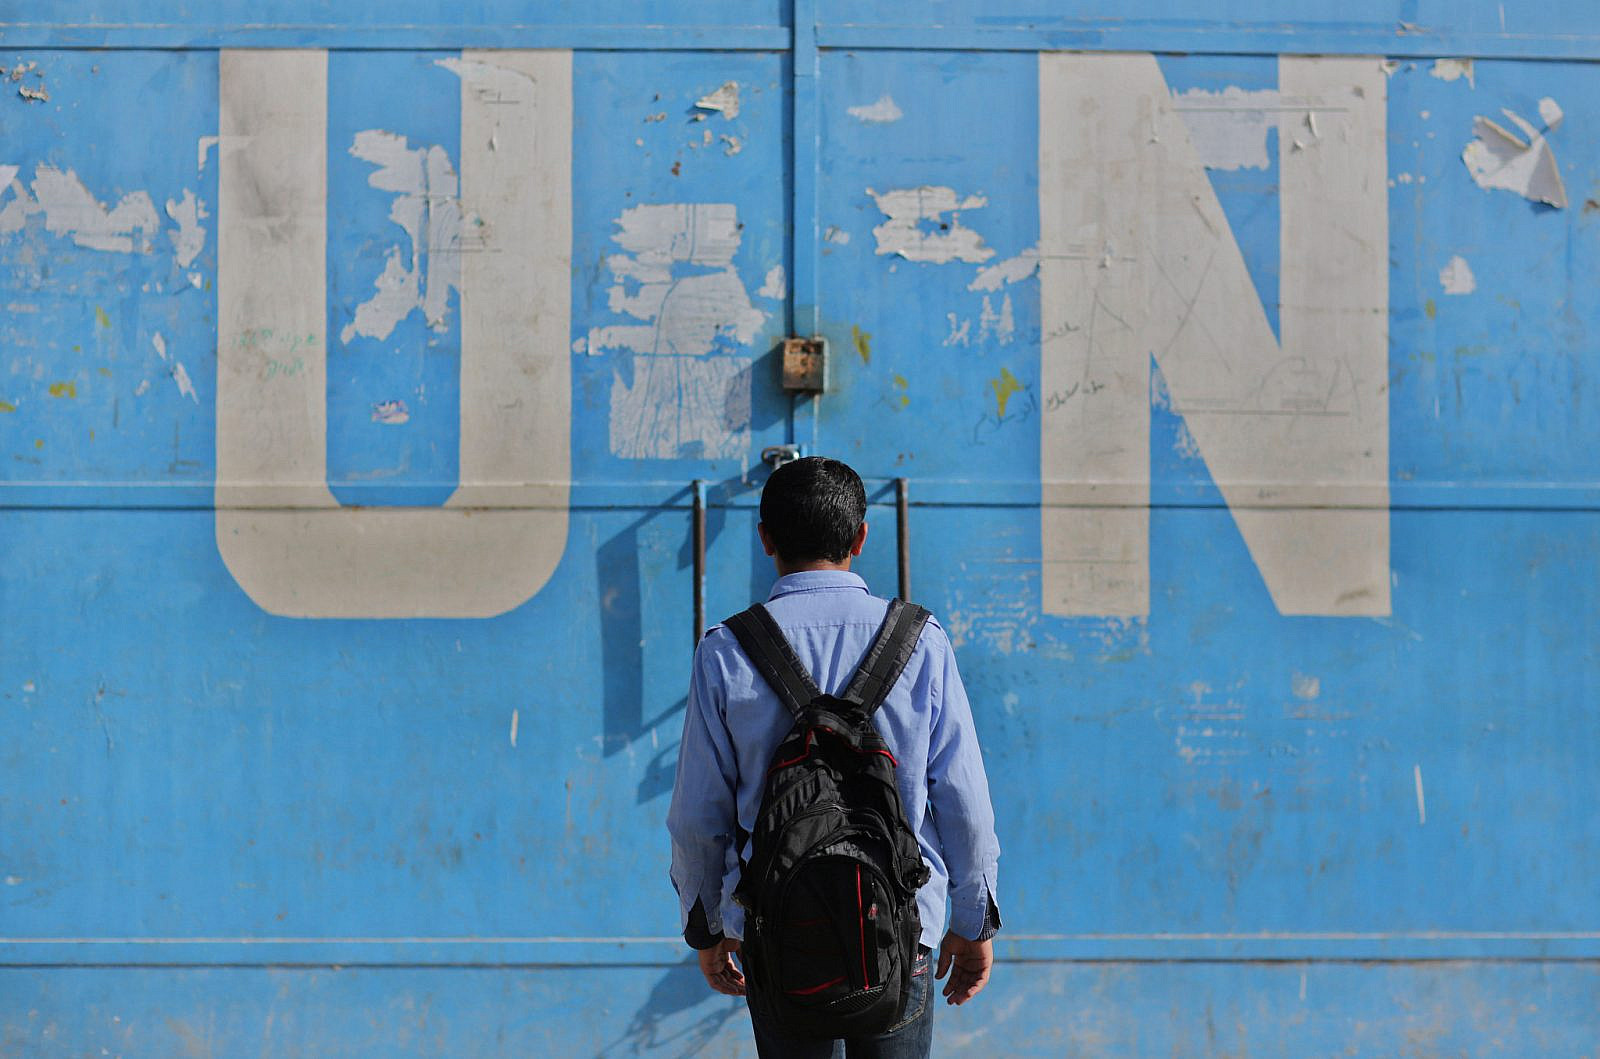 Palestinian students walk past a UN distribution center in the Jabalia refugee camp in the northern Gaza Strip on April 6, 2013. (Wissam Nassar/FLASH90)